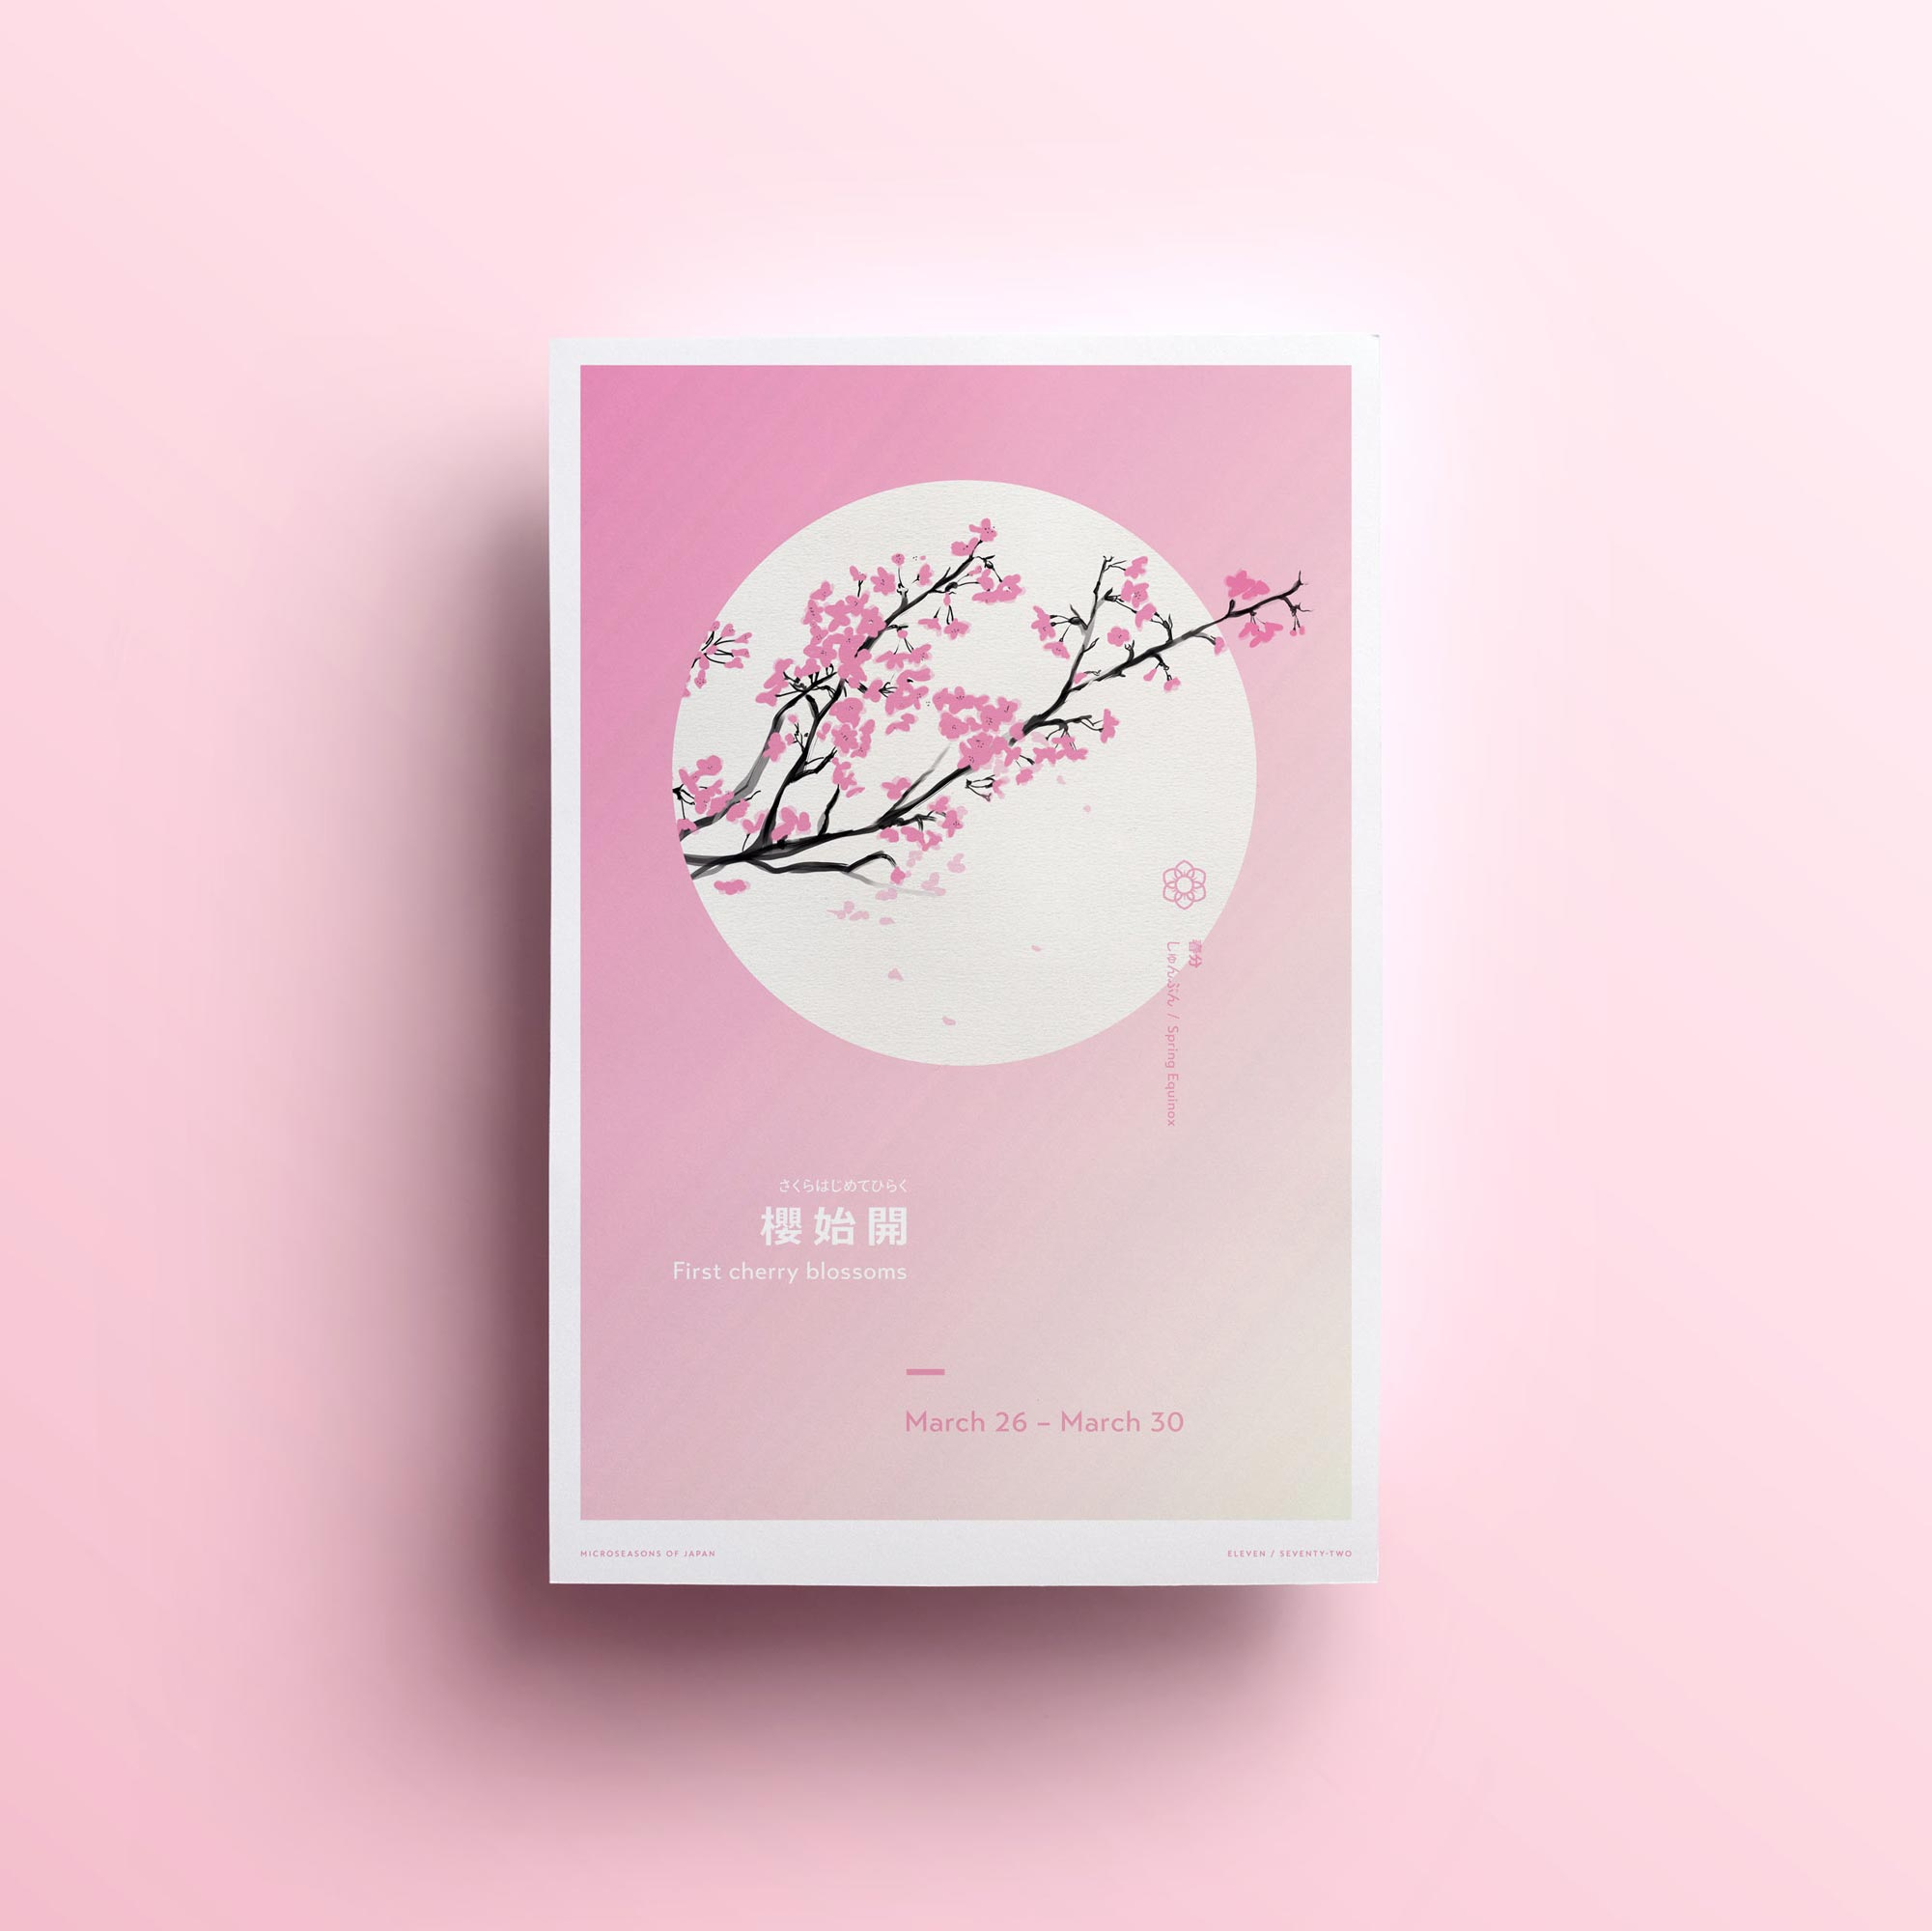 First Cherry Blossoms, poster design by Lisa Furze